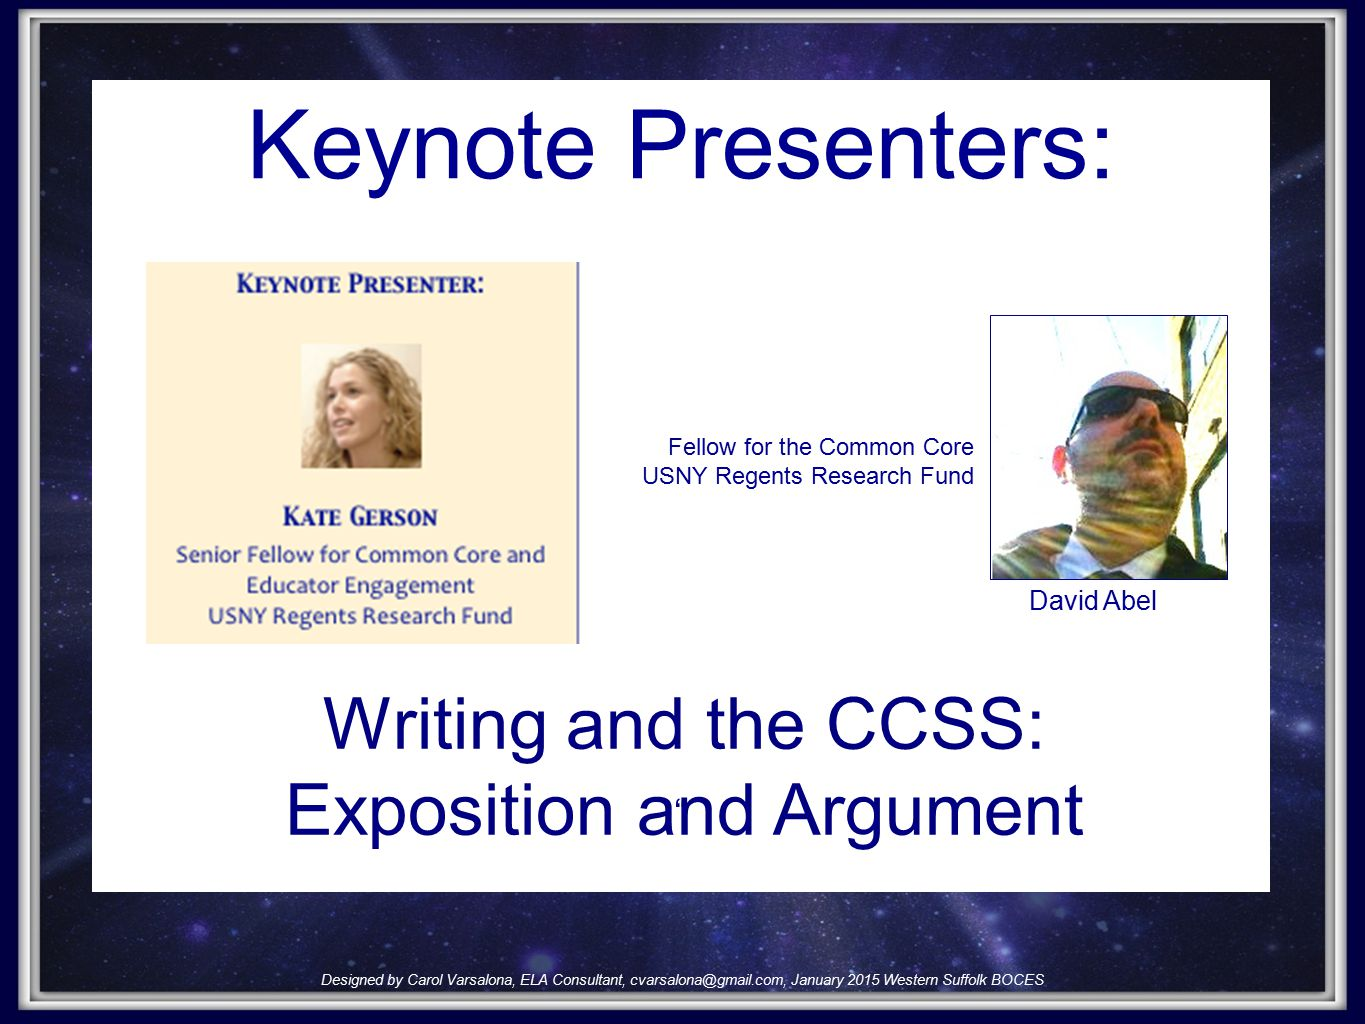 Keynote Presenters: Fellow for the Common Core USNY Regents Research Fund David Abel Writing and the CCSS: Exposition and Argument Designed by Carol Varsalona, ELA Consultant, cvarsalona@gmail.com, January 2015 Western Suffolk BOCES